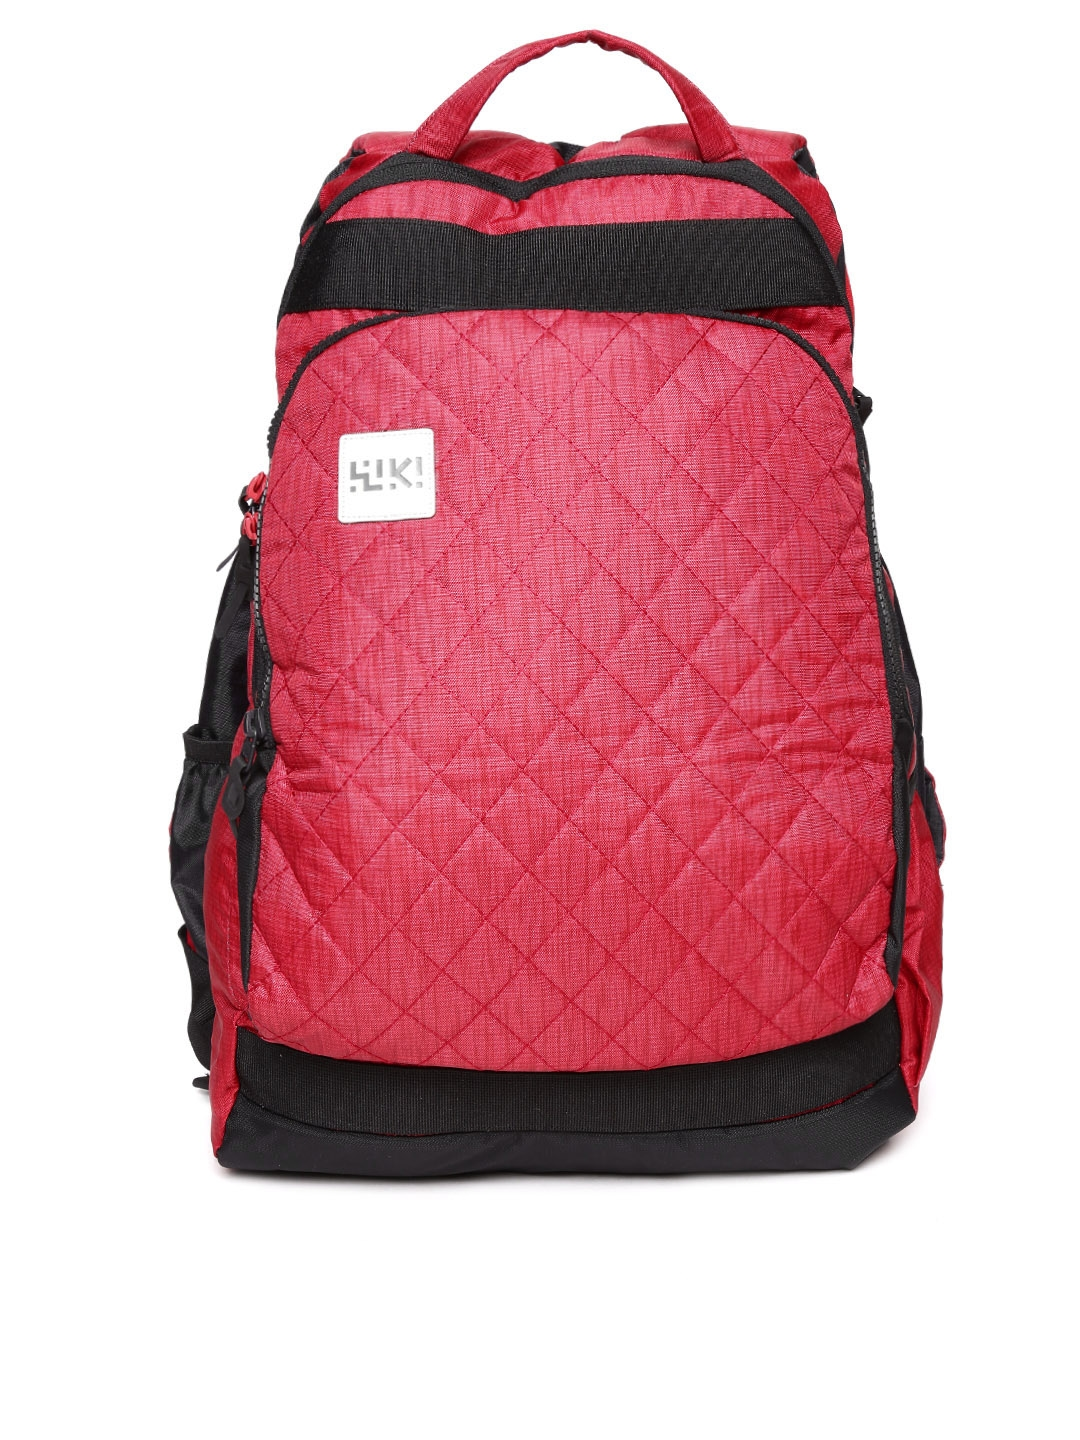 b3d3947f0e Buy Wildcraft Unisex Black   Red Toss Quilted Reversible Backpack ...